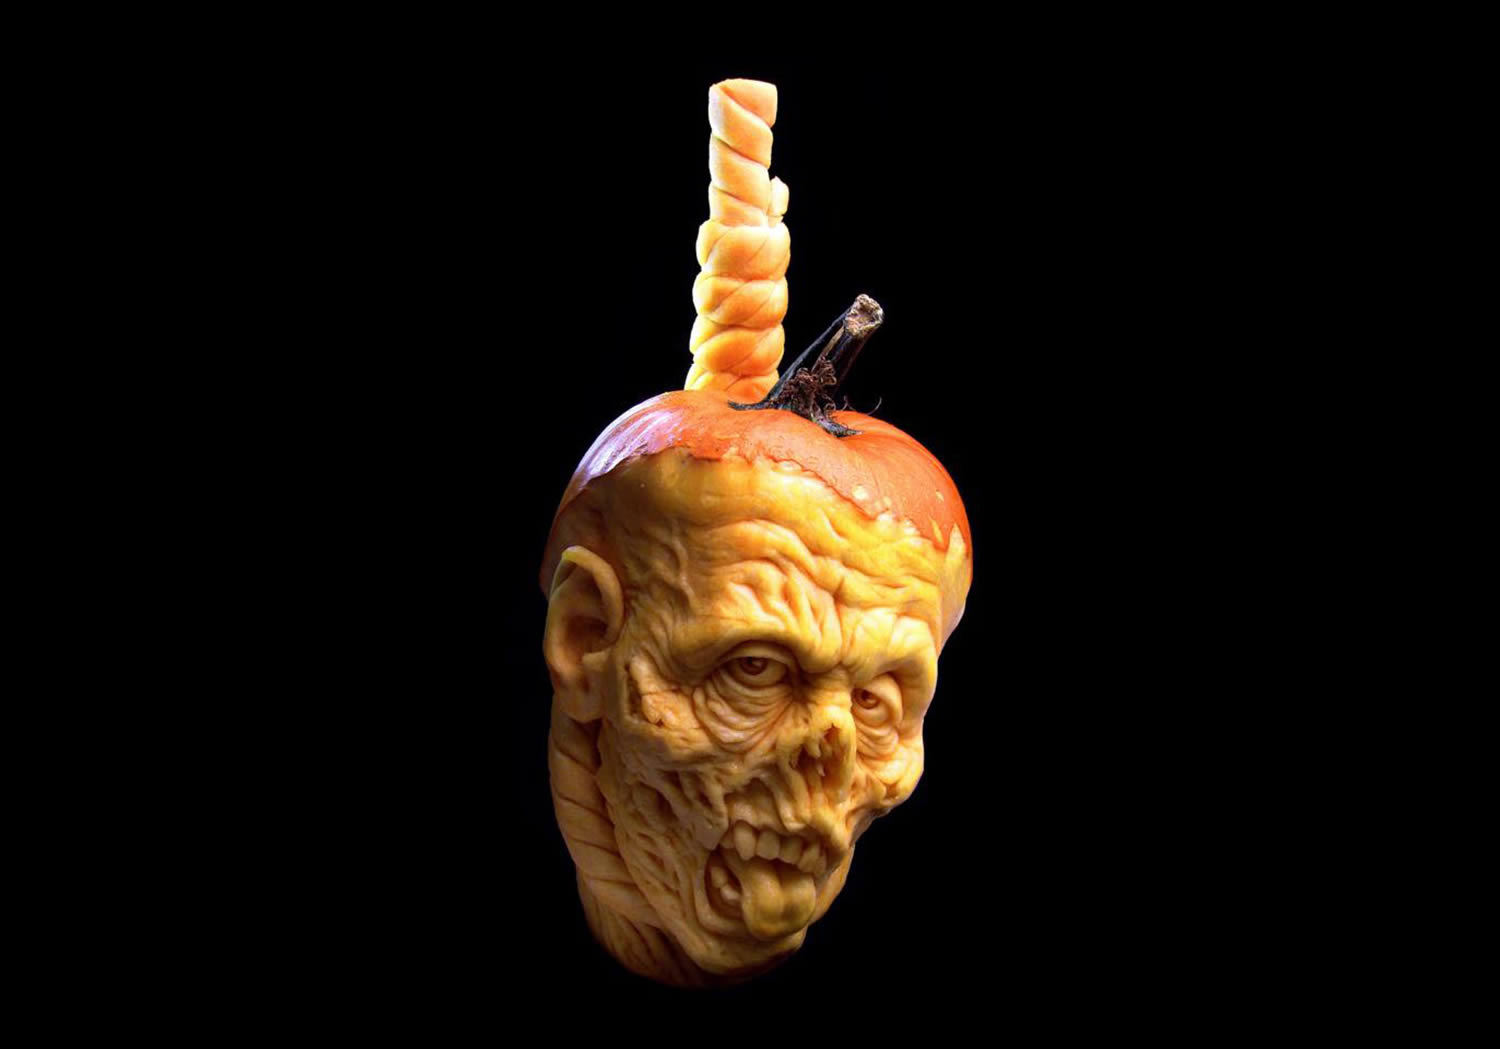 grotesque man zombie pumpkin, halloween